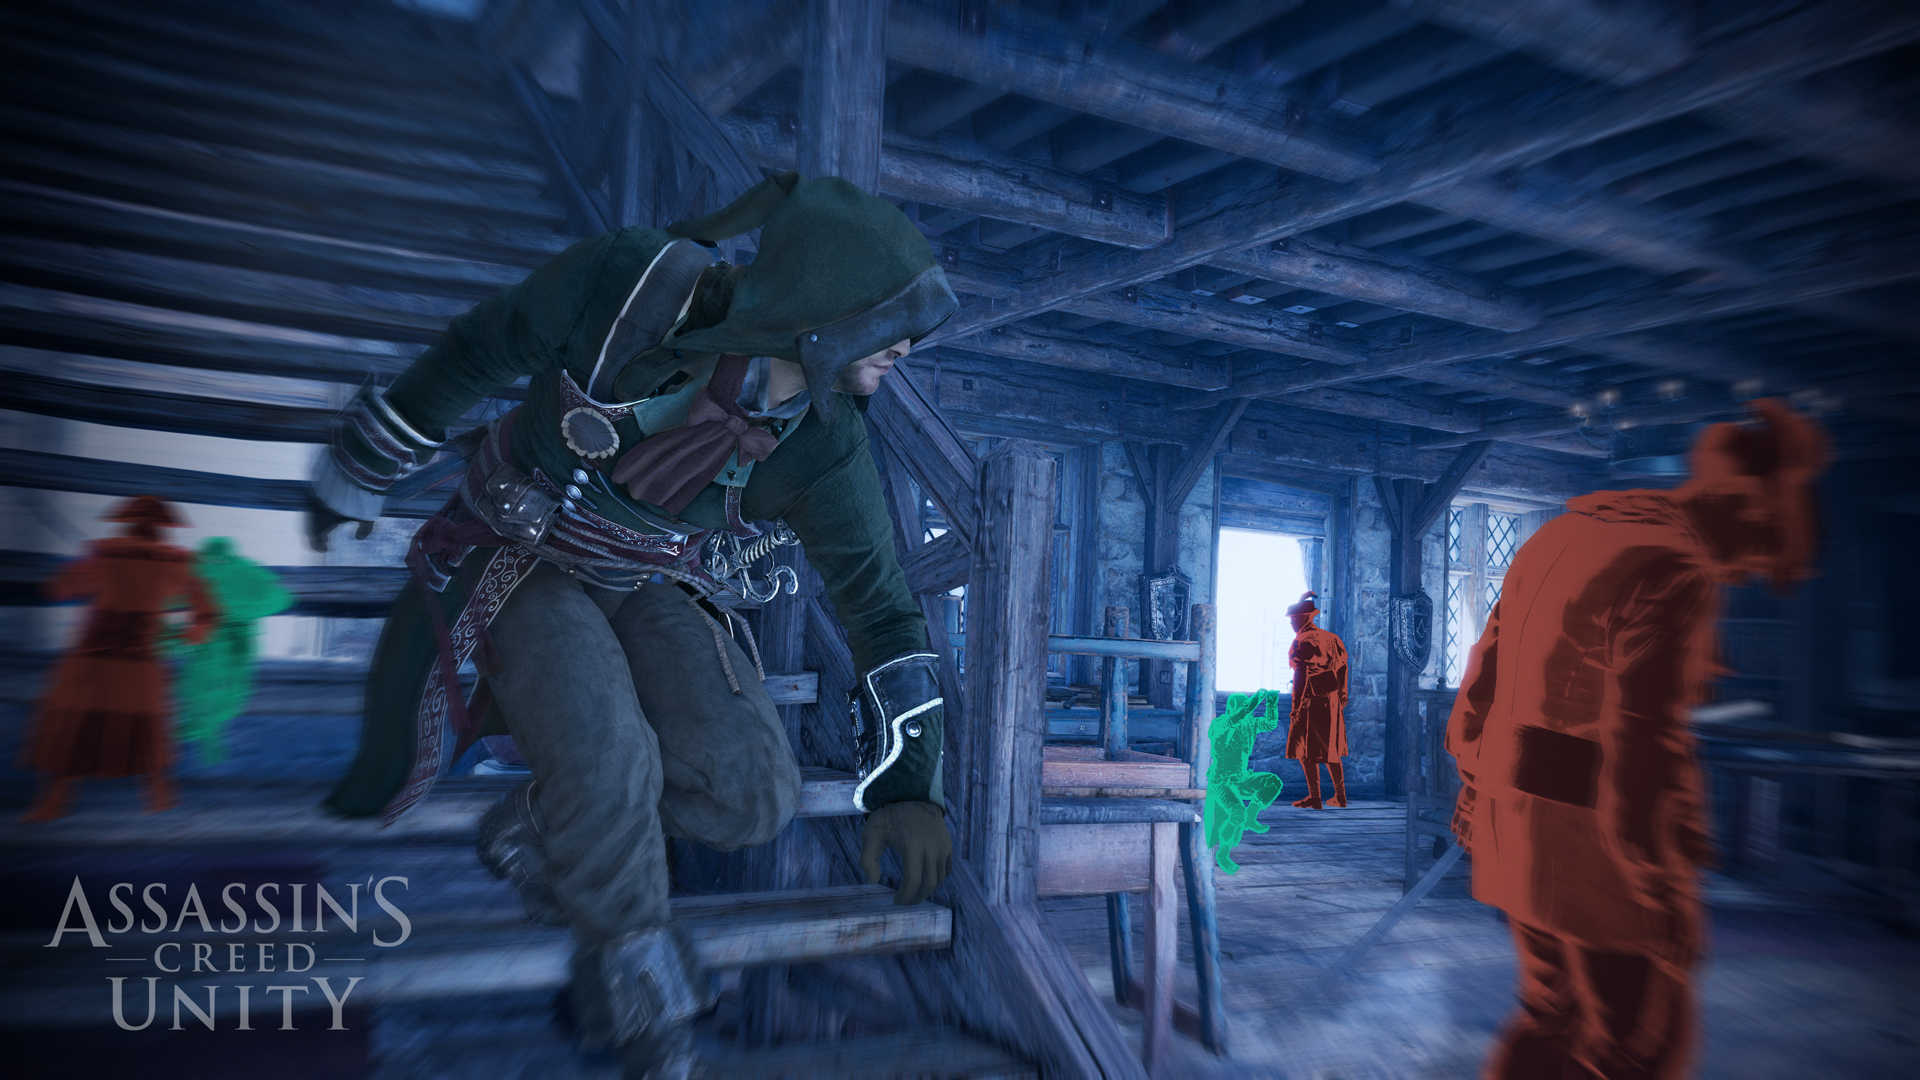 assassin_s_creed_unity_infiltration